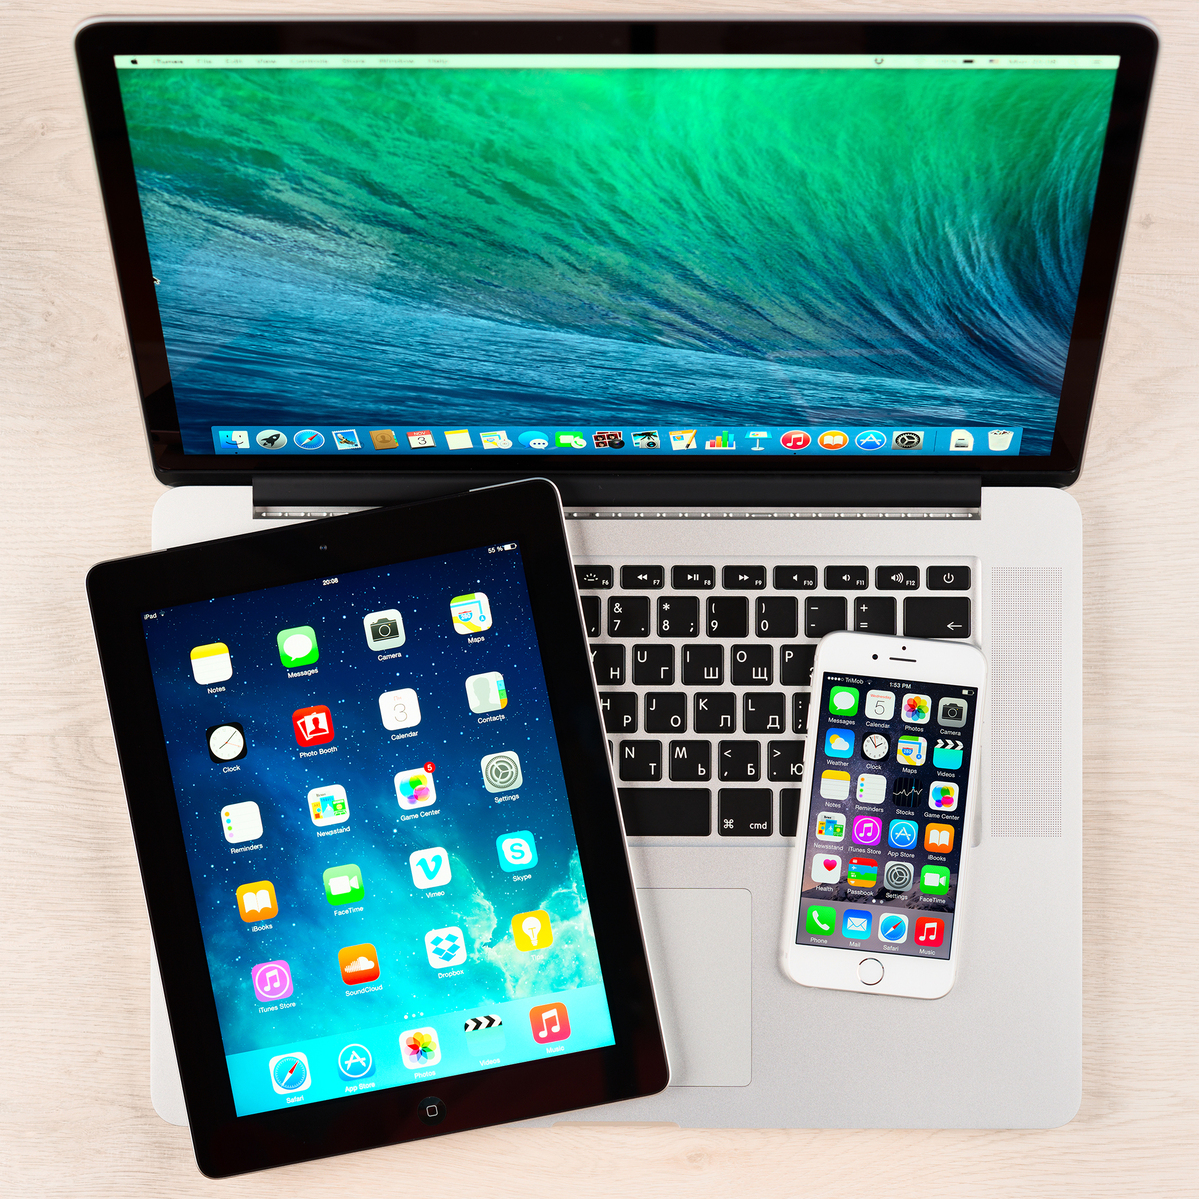 Apple's 2020 iPads and MacBooks will have new advanced displays, top analyst says